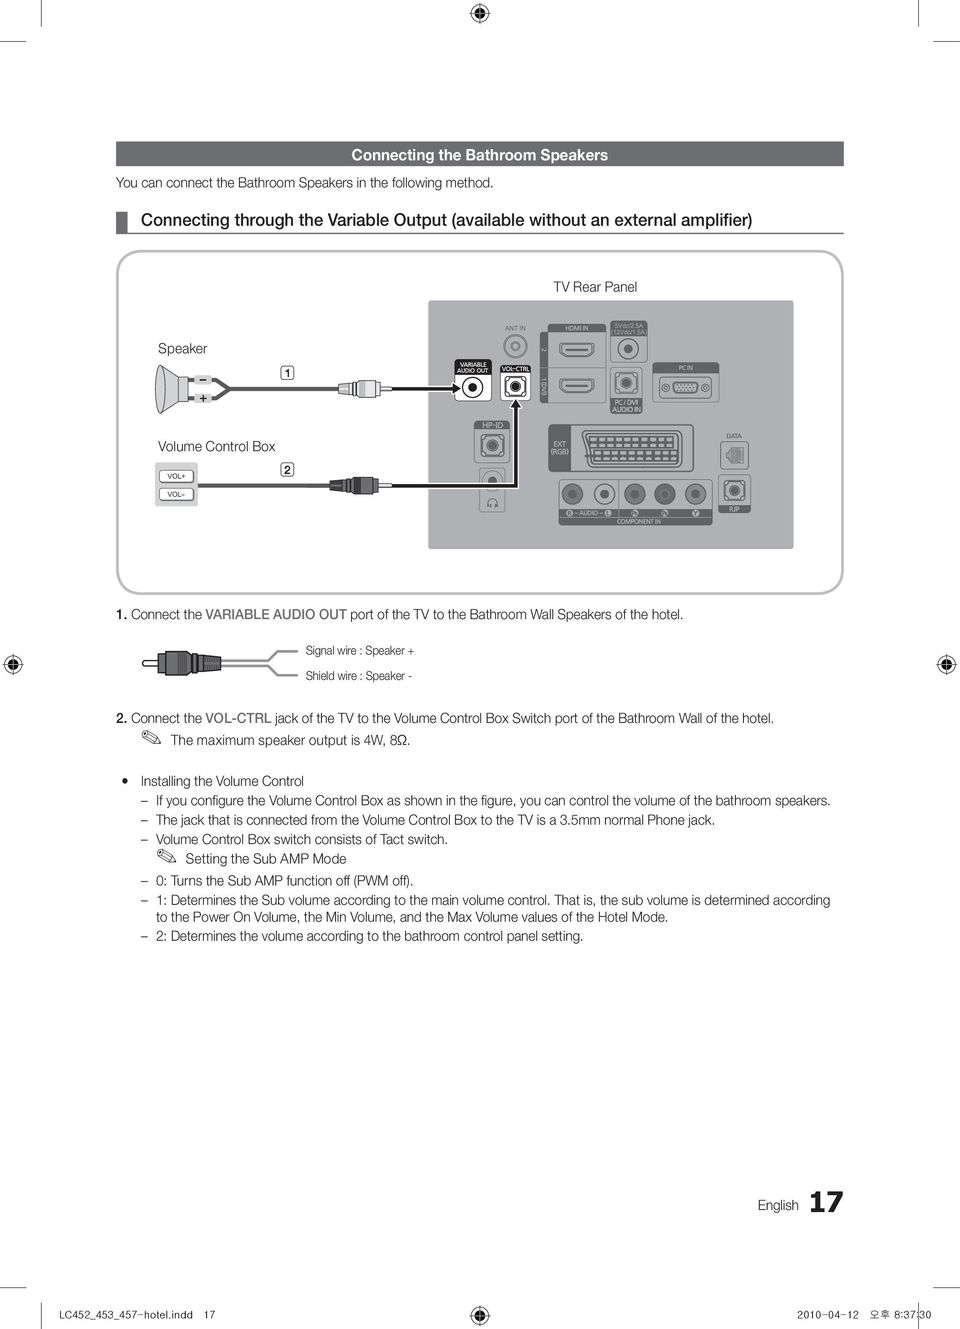 Lcd Tv Installation Manual Imagine The Possibilities Pdf Phone Jack Wiring Diagram 2010 Connect Variable Audio Out Port Of To Bathroom Wall Speakers